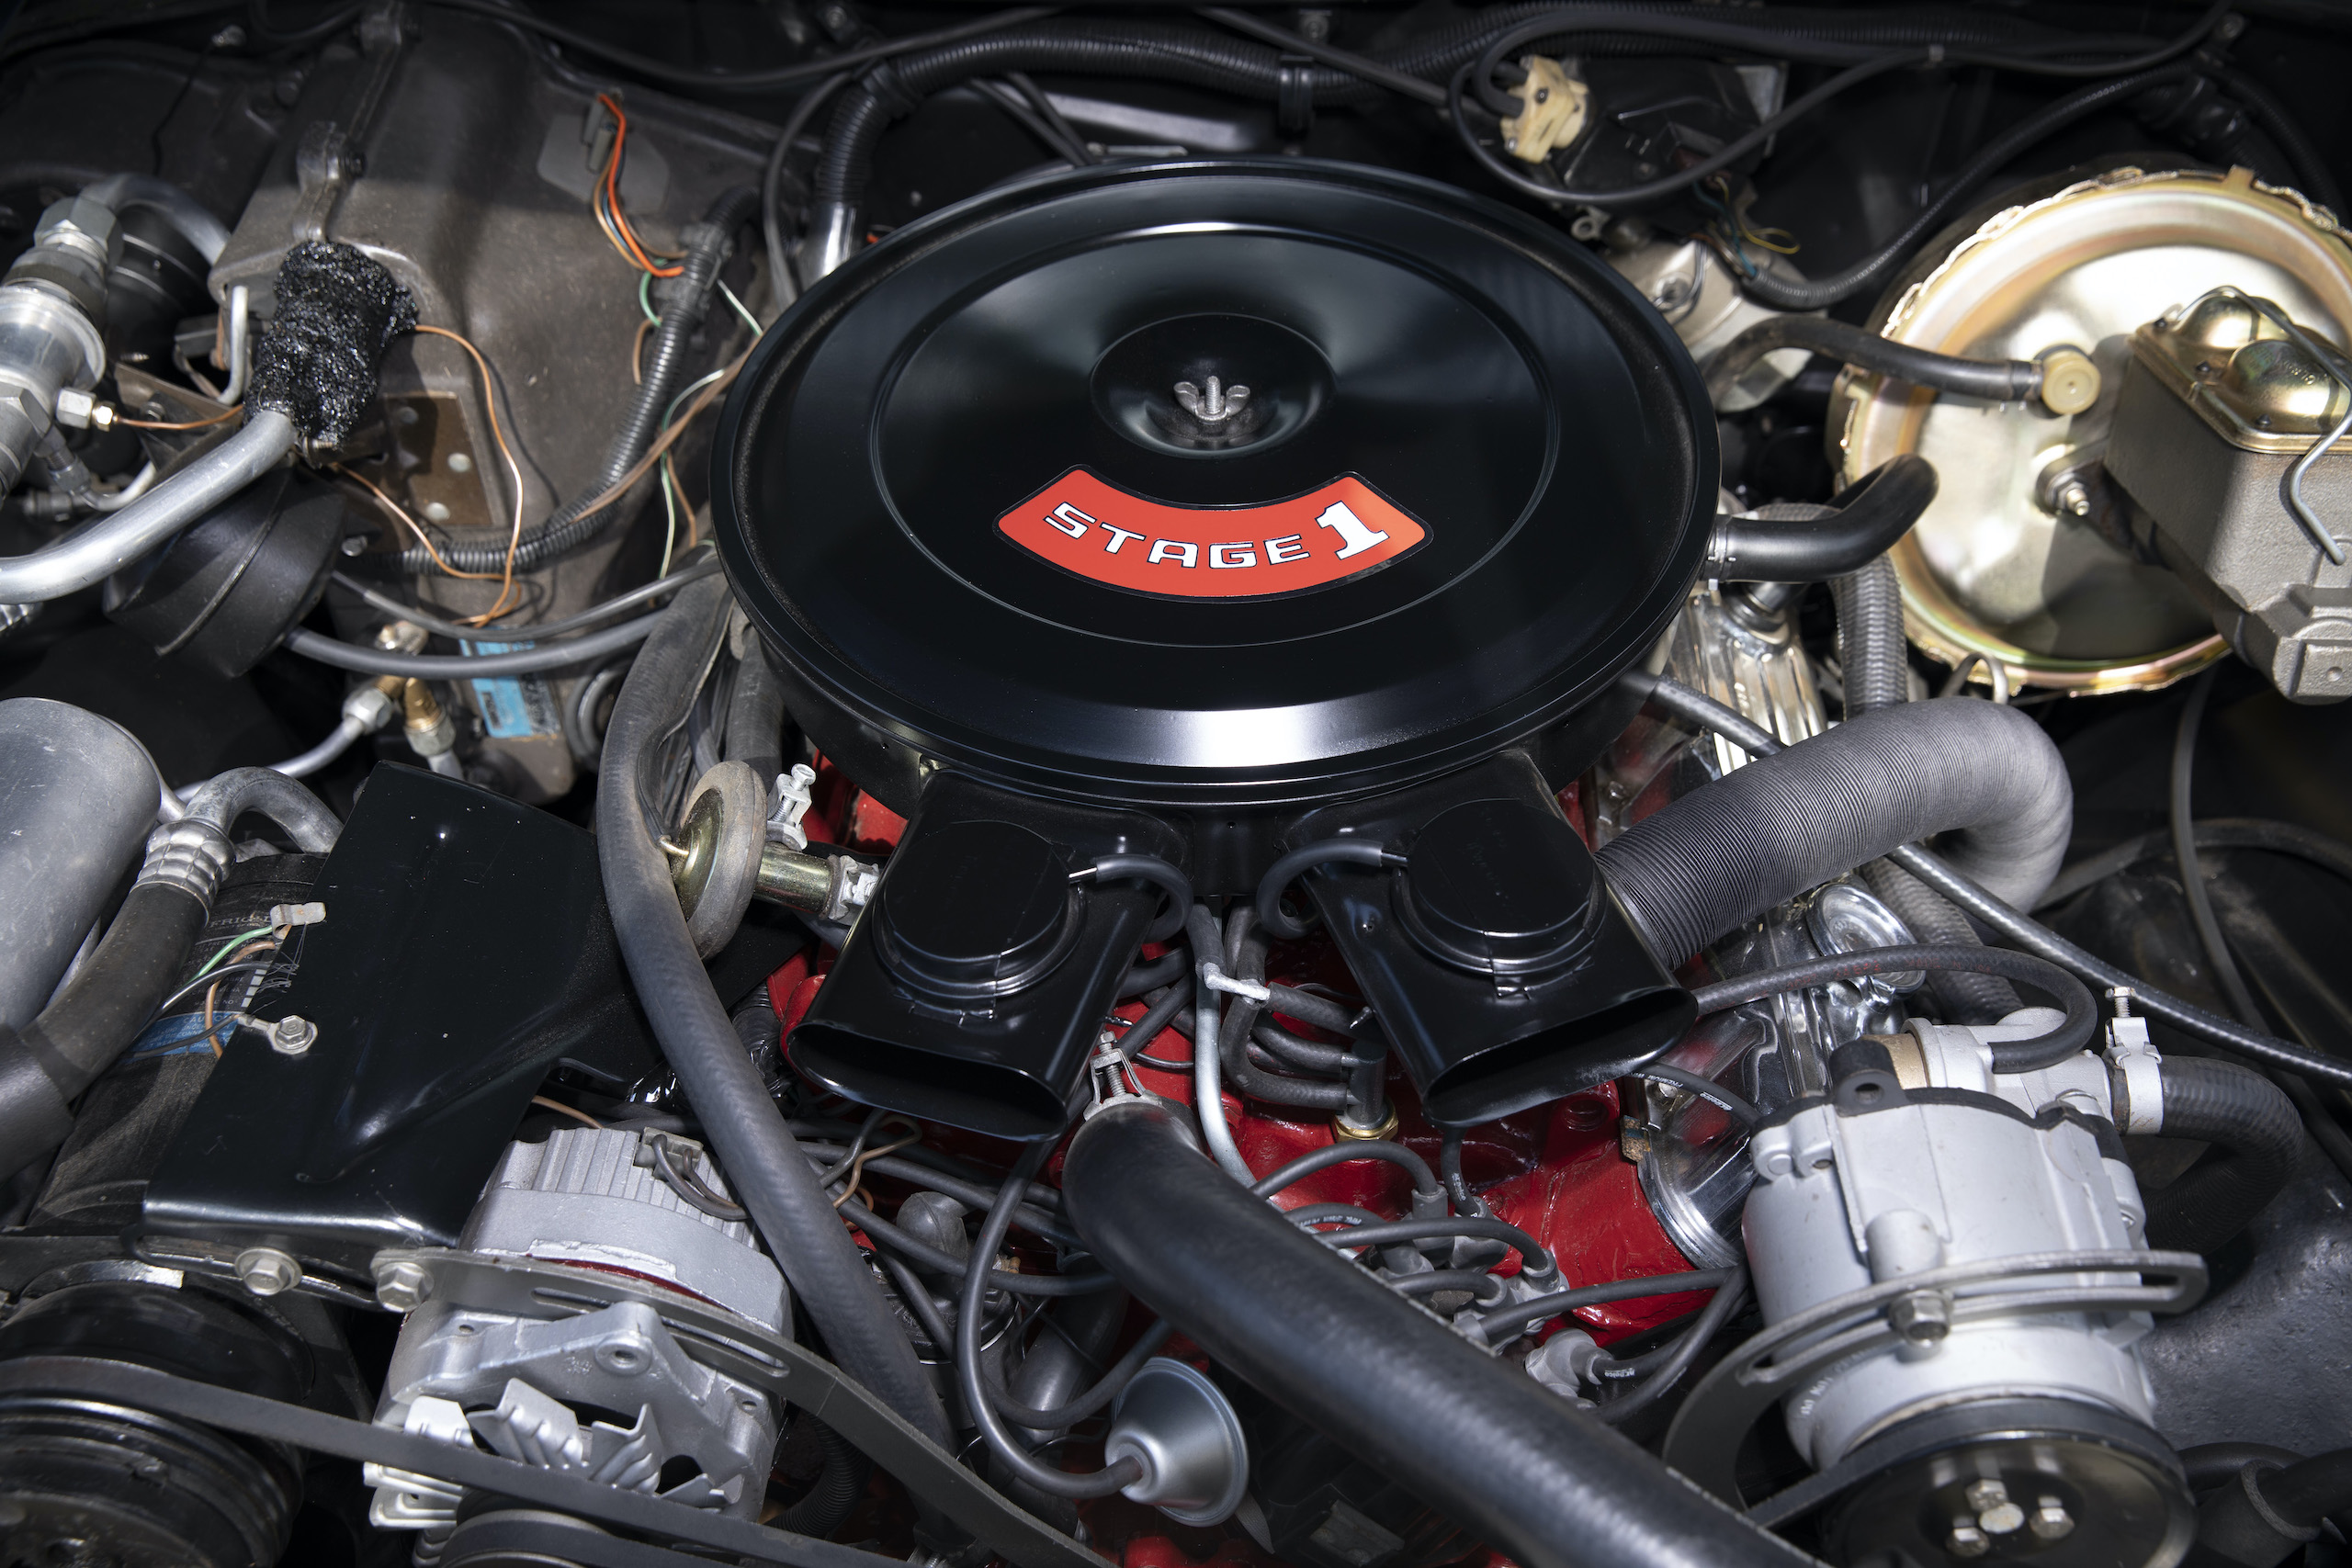 1973 Buick GS Stage 1 gran sport coupe engine front